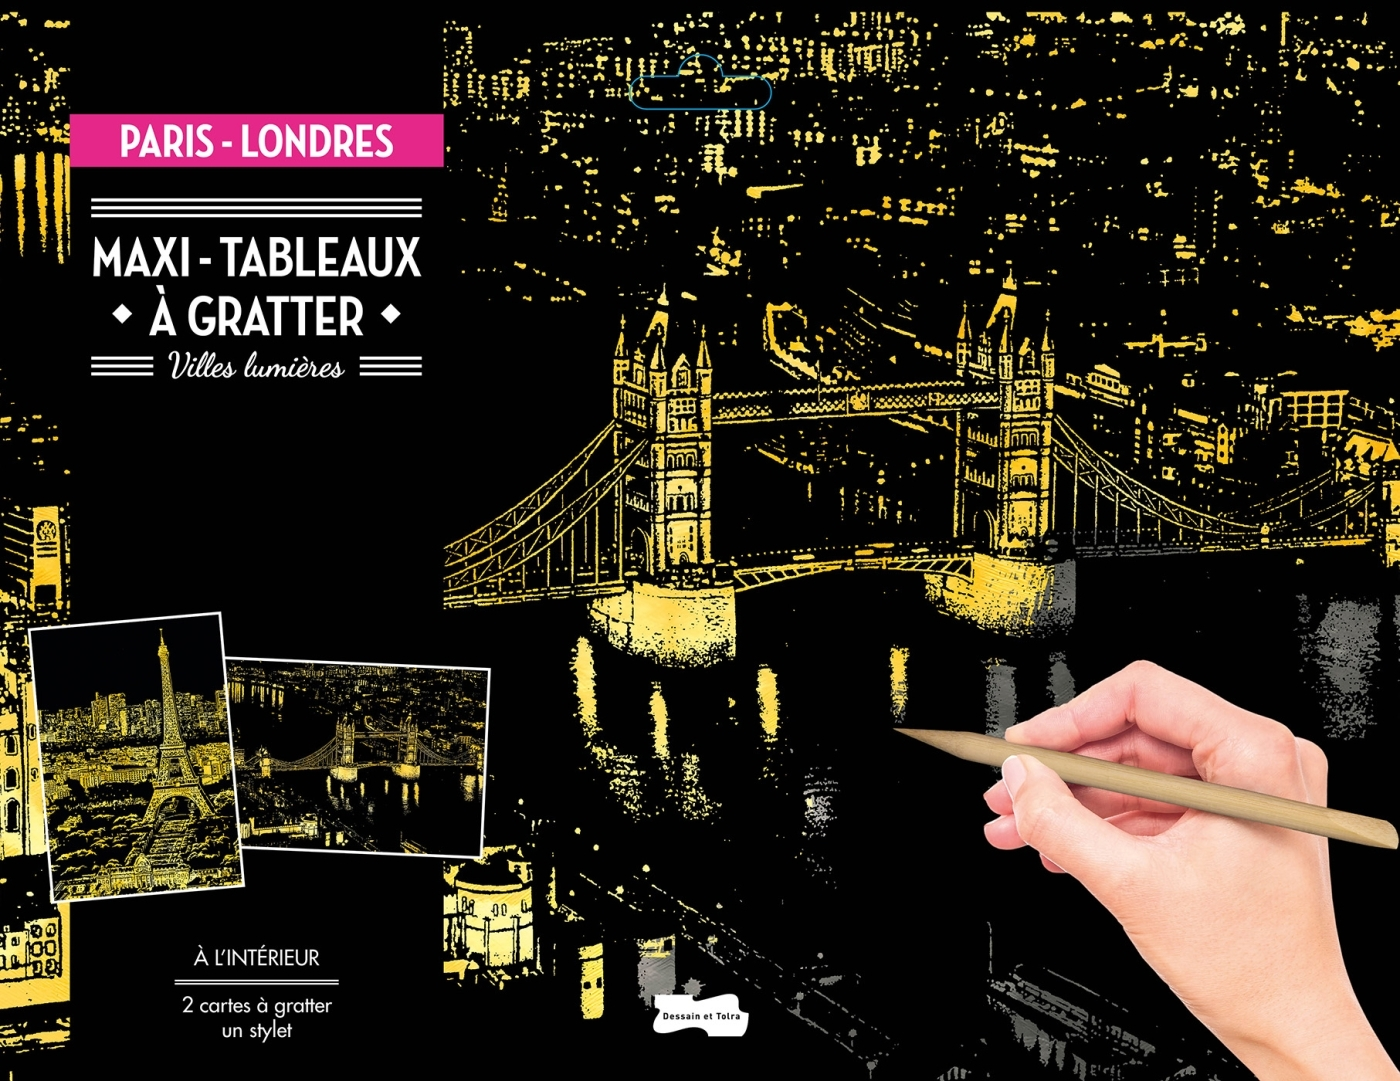 MAXI-TABLEAUX A GRATTER PARIS-LONDRES